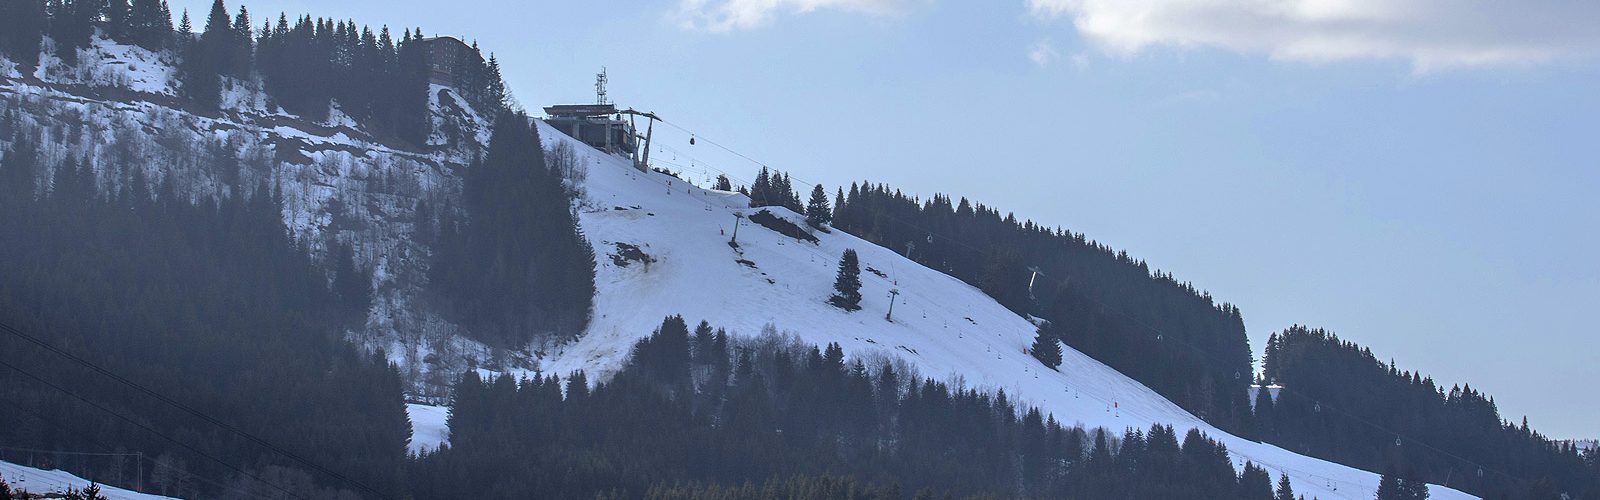 Chillout Mountain Morzine Ski Lift